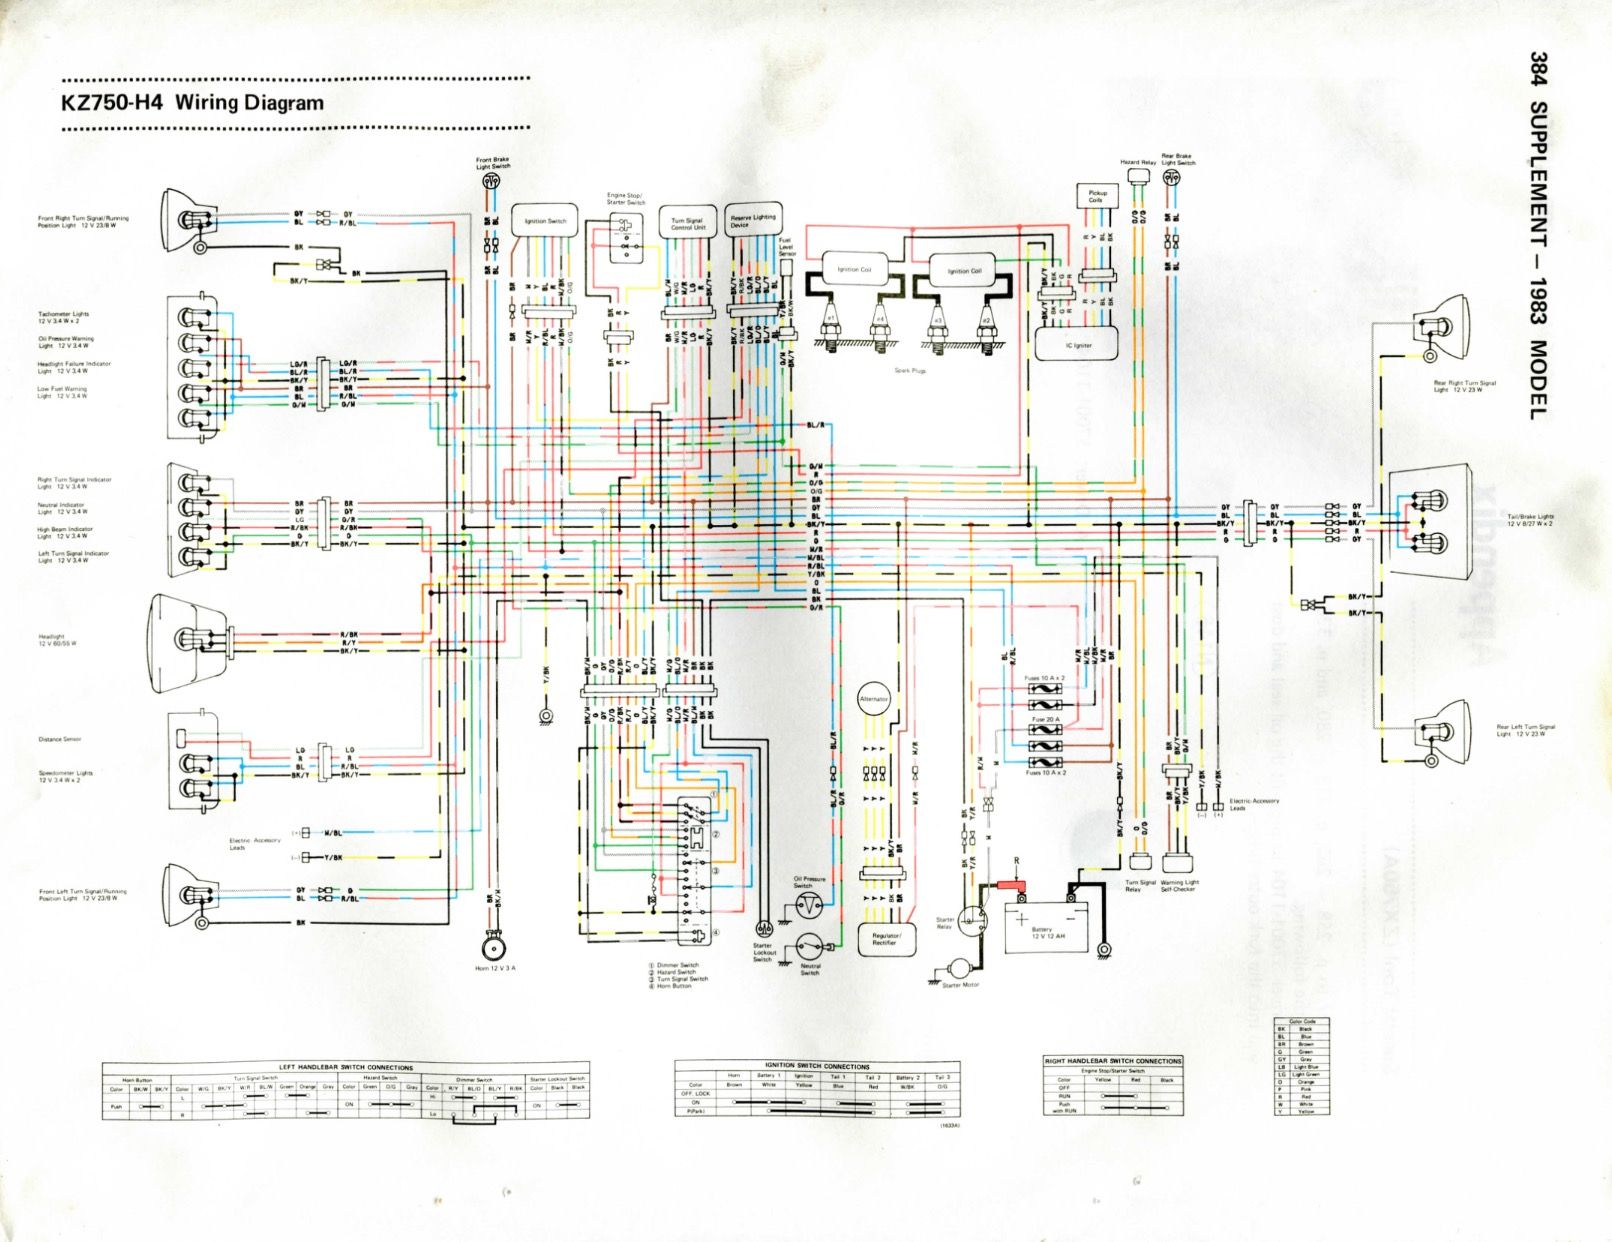 Wiring Diagram Kz750 Ltd Change Your Idea With Design Kawasaki 1982 1000 1983 H4 Highly Utilized During Rh Pinterest Com Kz550